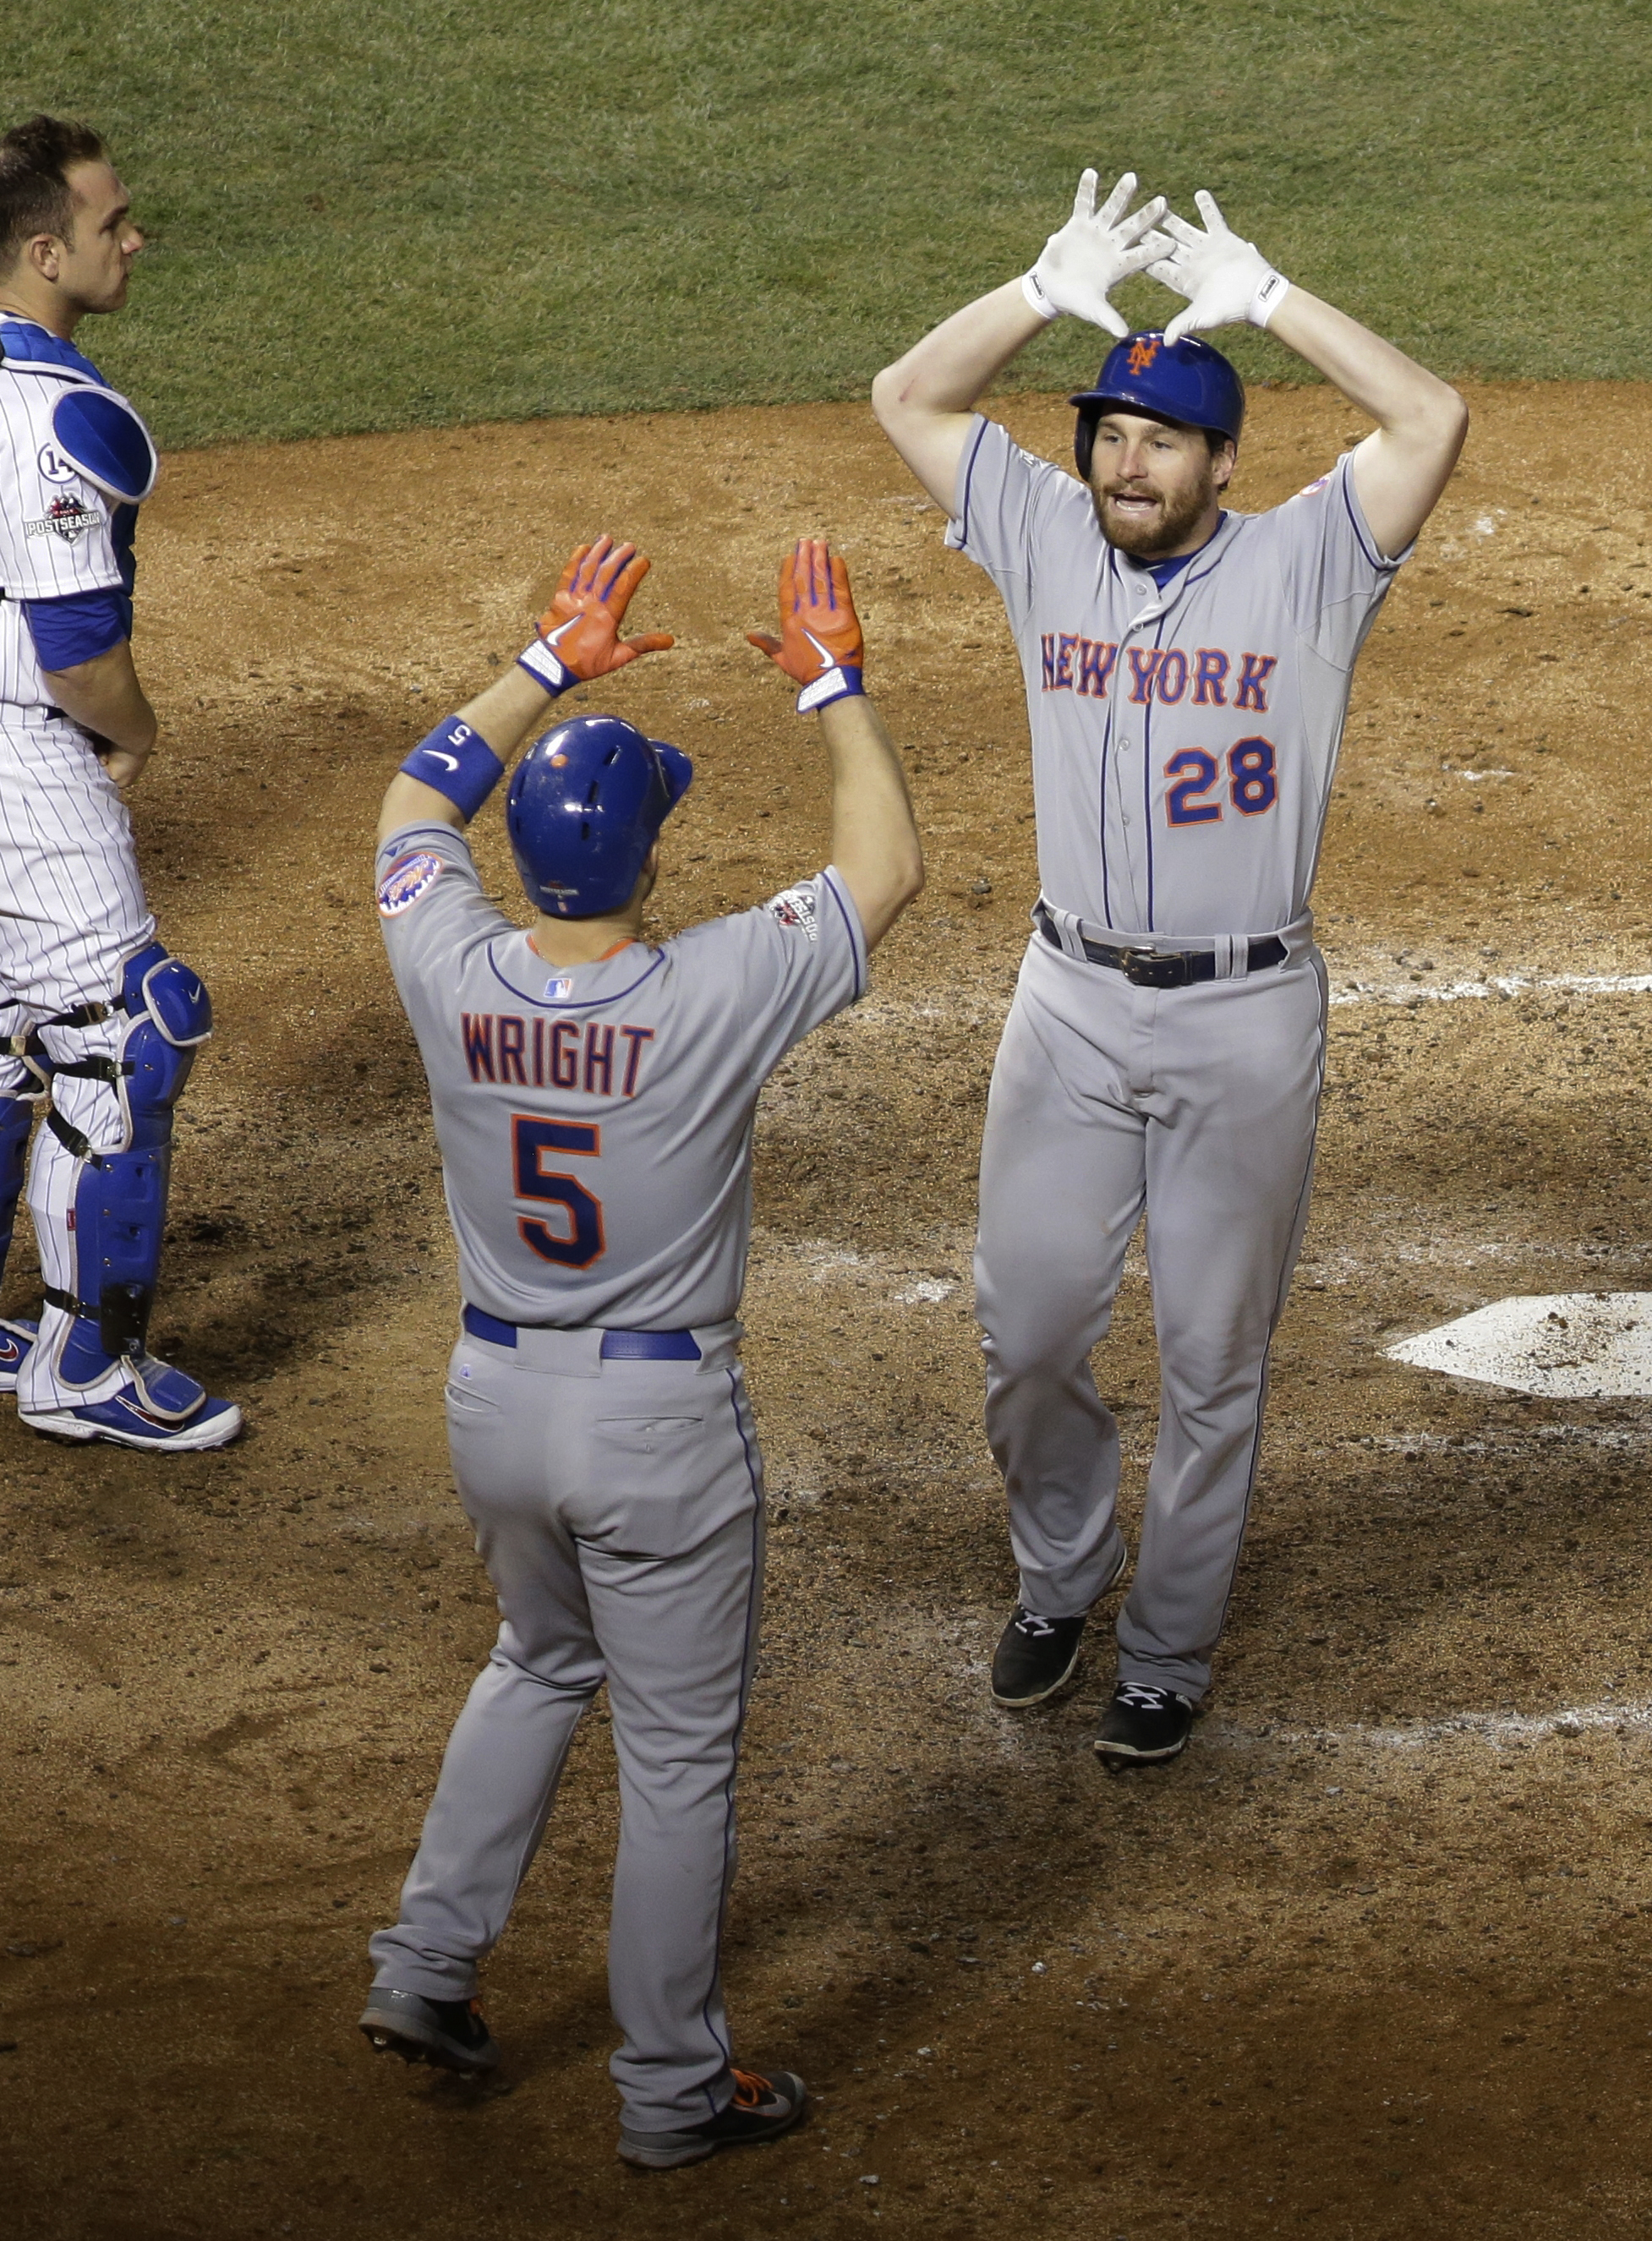 New York Mets advance to World Series (Photos)